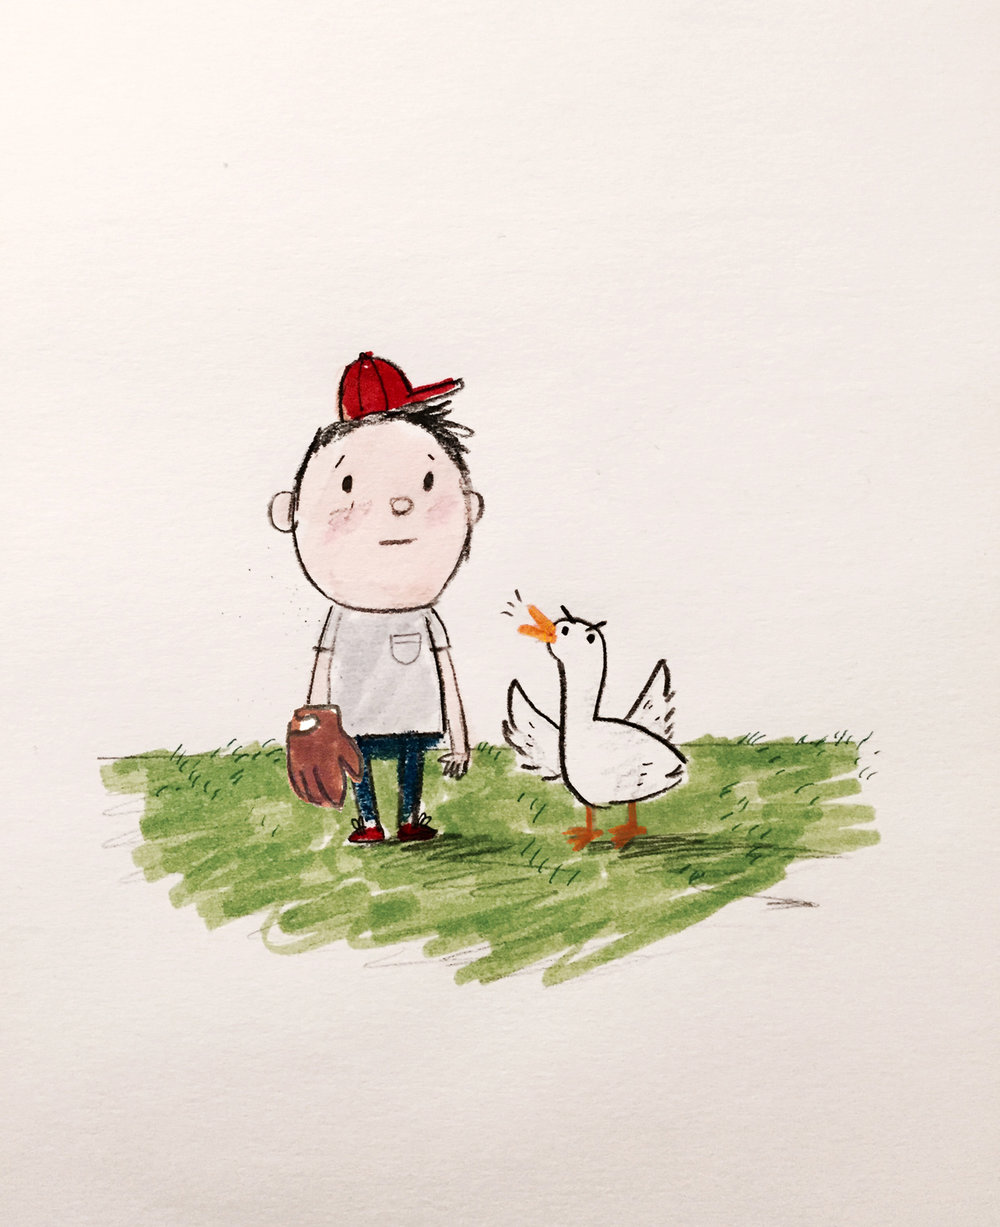 andrew_and_the_duck.jpg